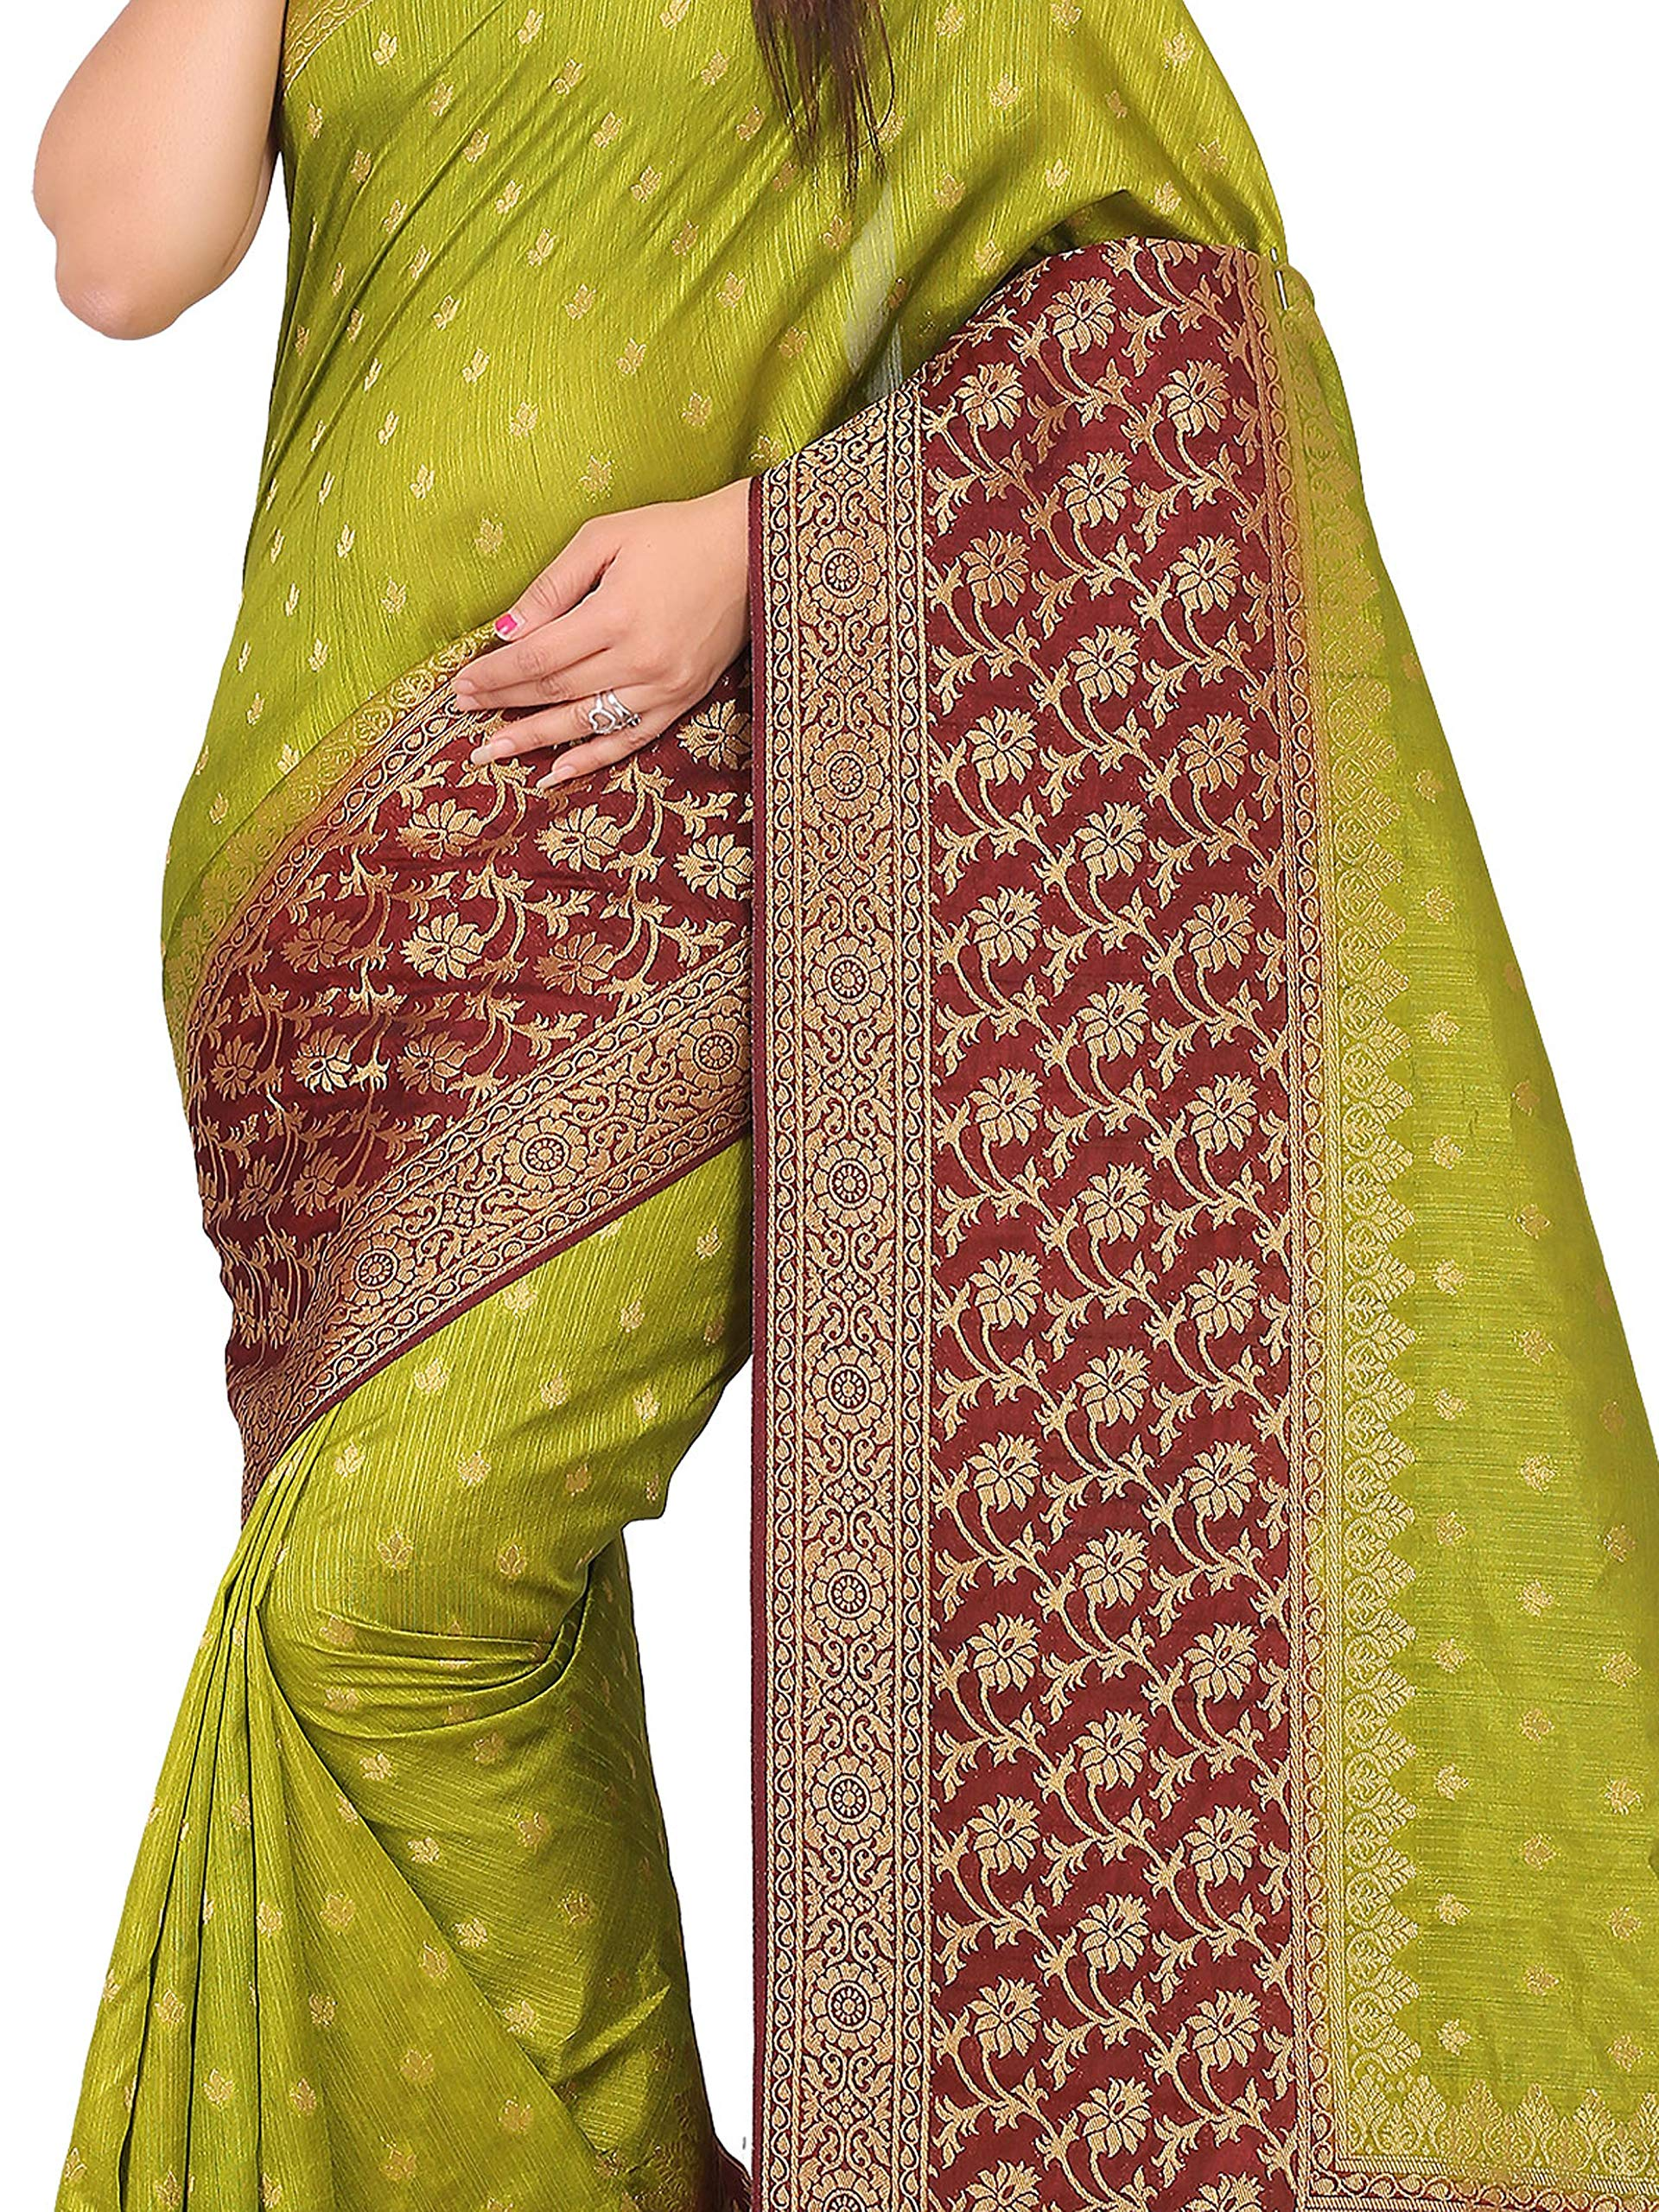 ed3f1571dd lali mix Raw Silk Sarees Archives - Page 2 of 9 - lali mix india